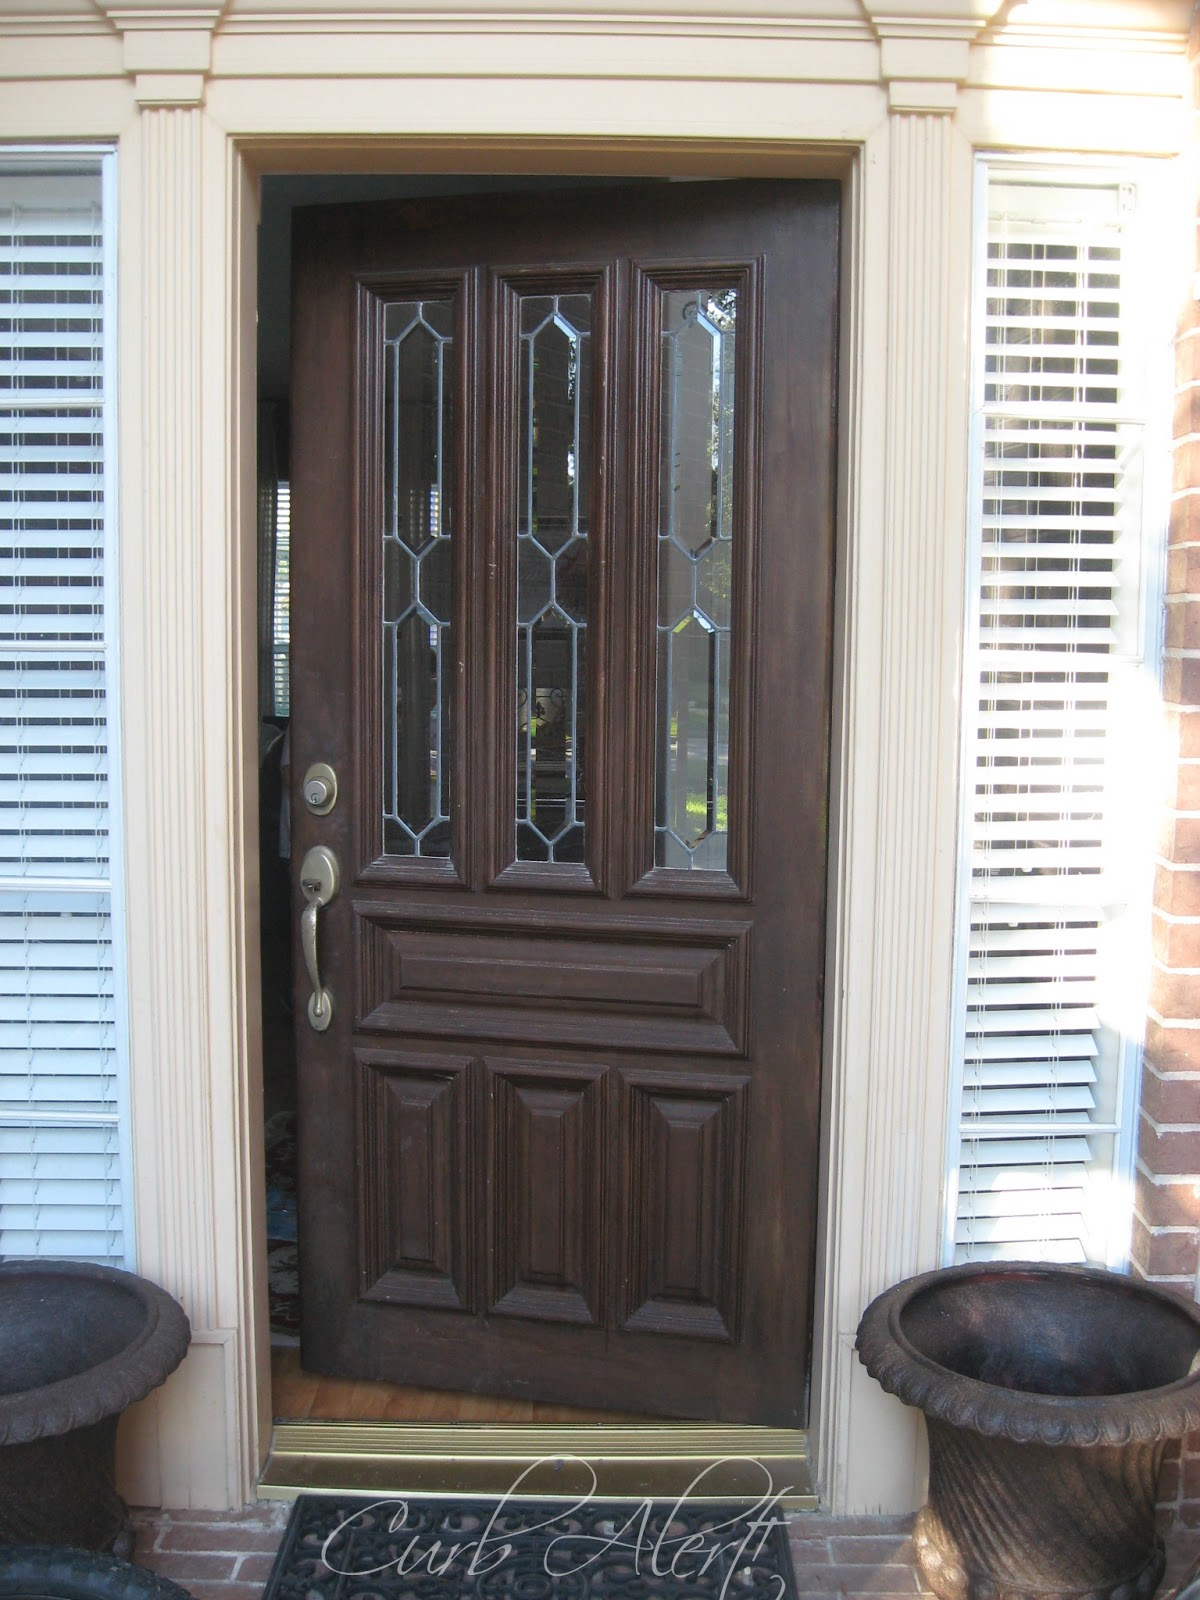 Updating Your Homeu0027s Curb Appeal {Front Door Refinishing}